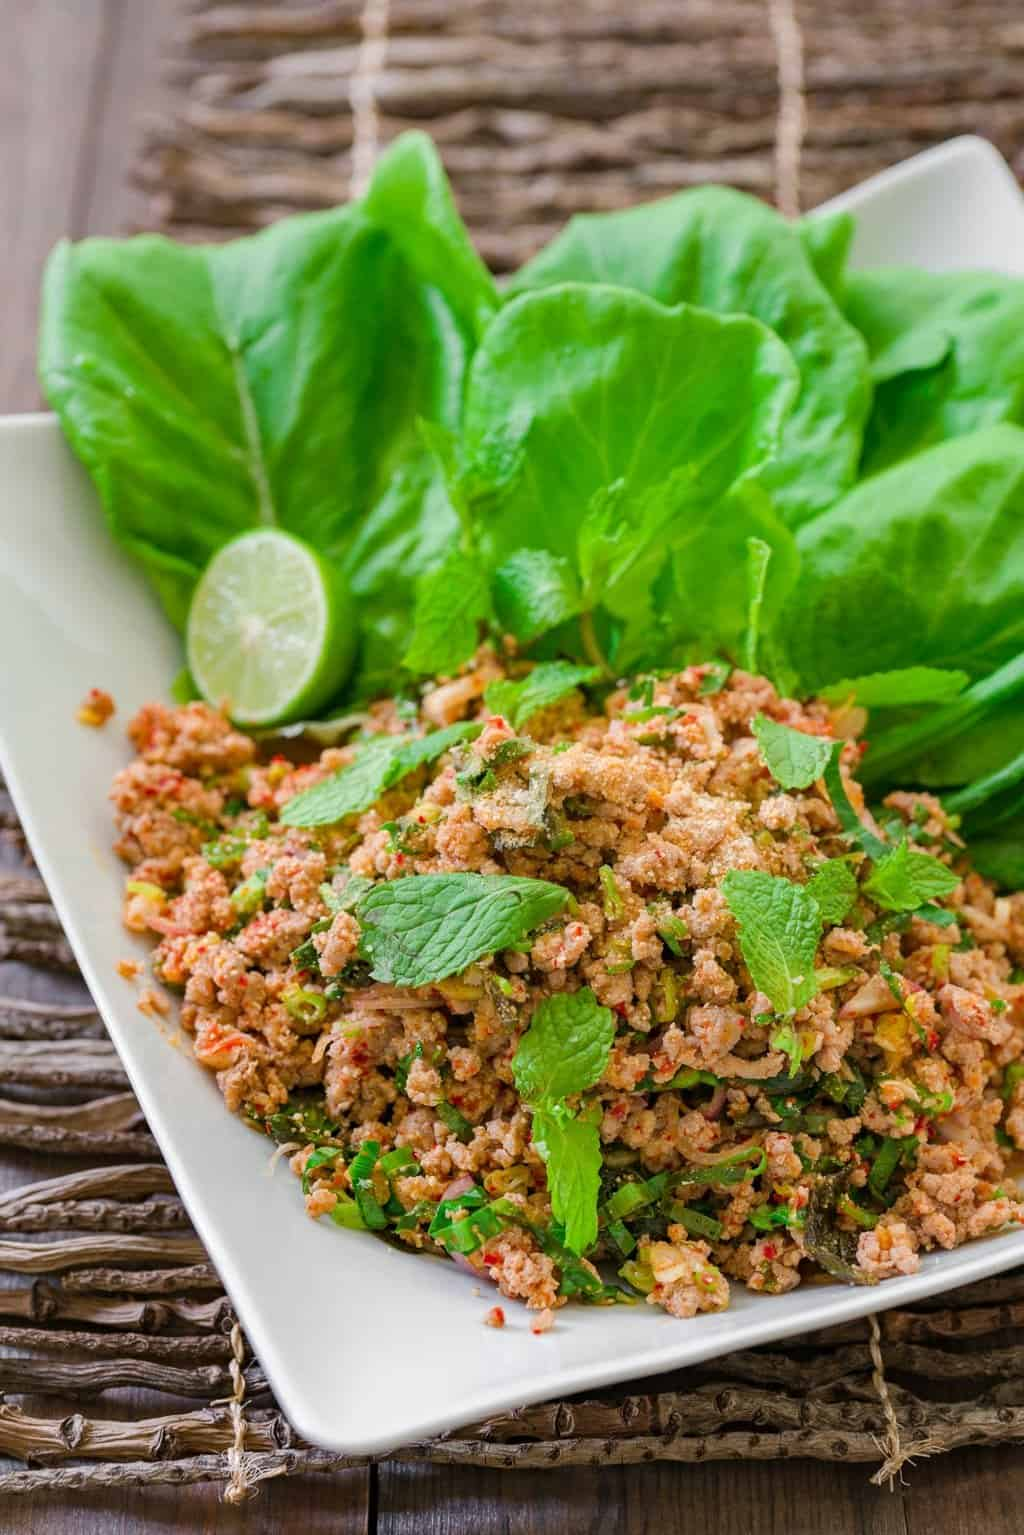 """Larb Mu, or """"pork larb"""" is an easy Isan Thai/Lao salad made with ground meat, mint, lemongrass, chilies, and a tart and savory dressing."""